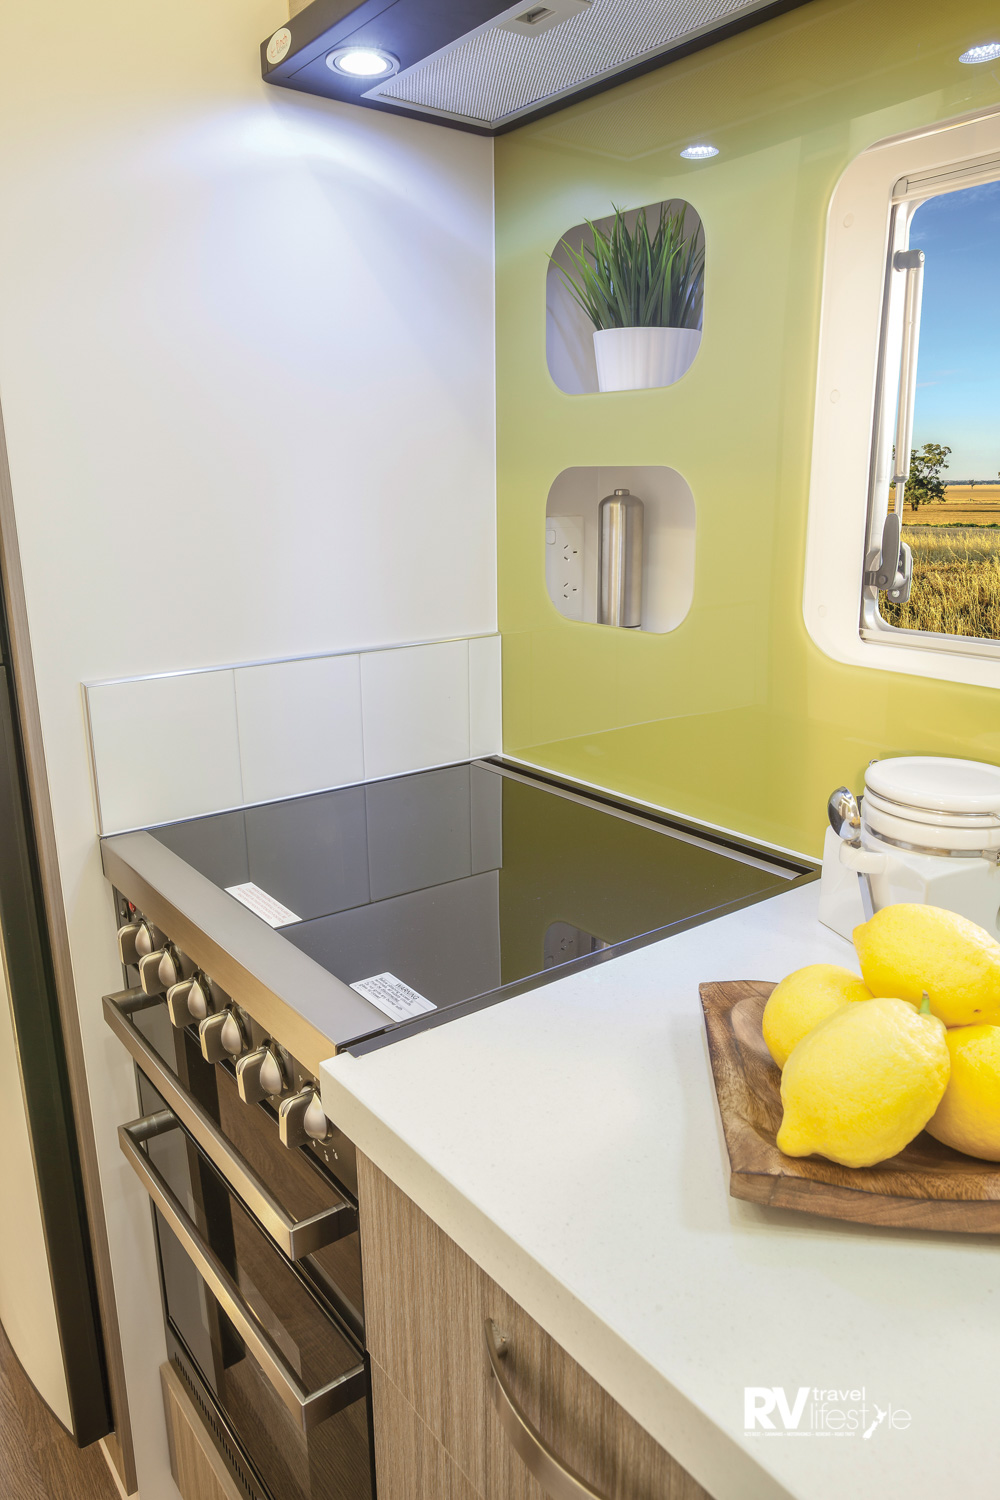 The galley features good bench space, a practical splash back and great overhead lighting